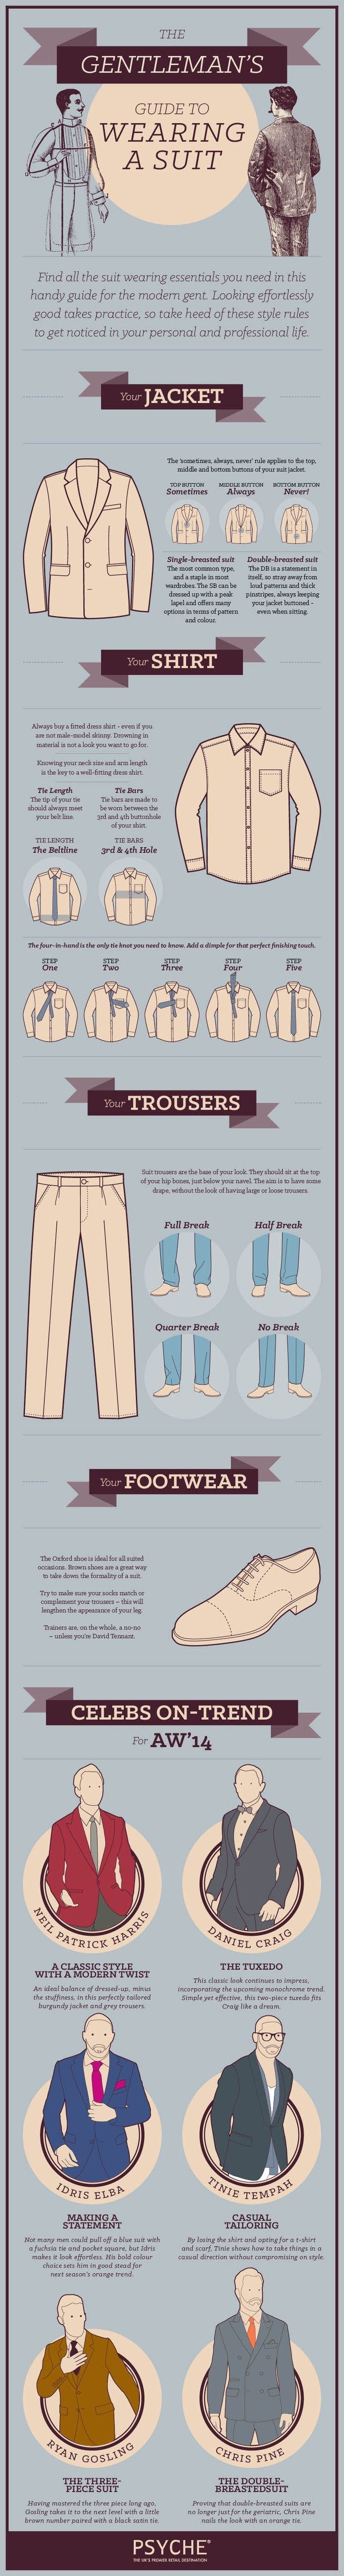 mens-suit-guide1, gentleman's guide to wearing a suit